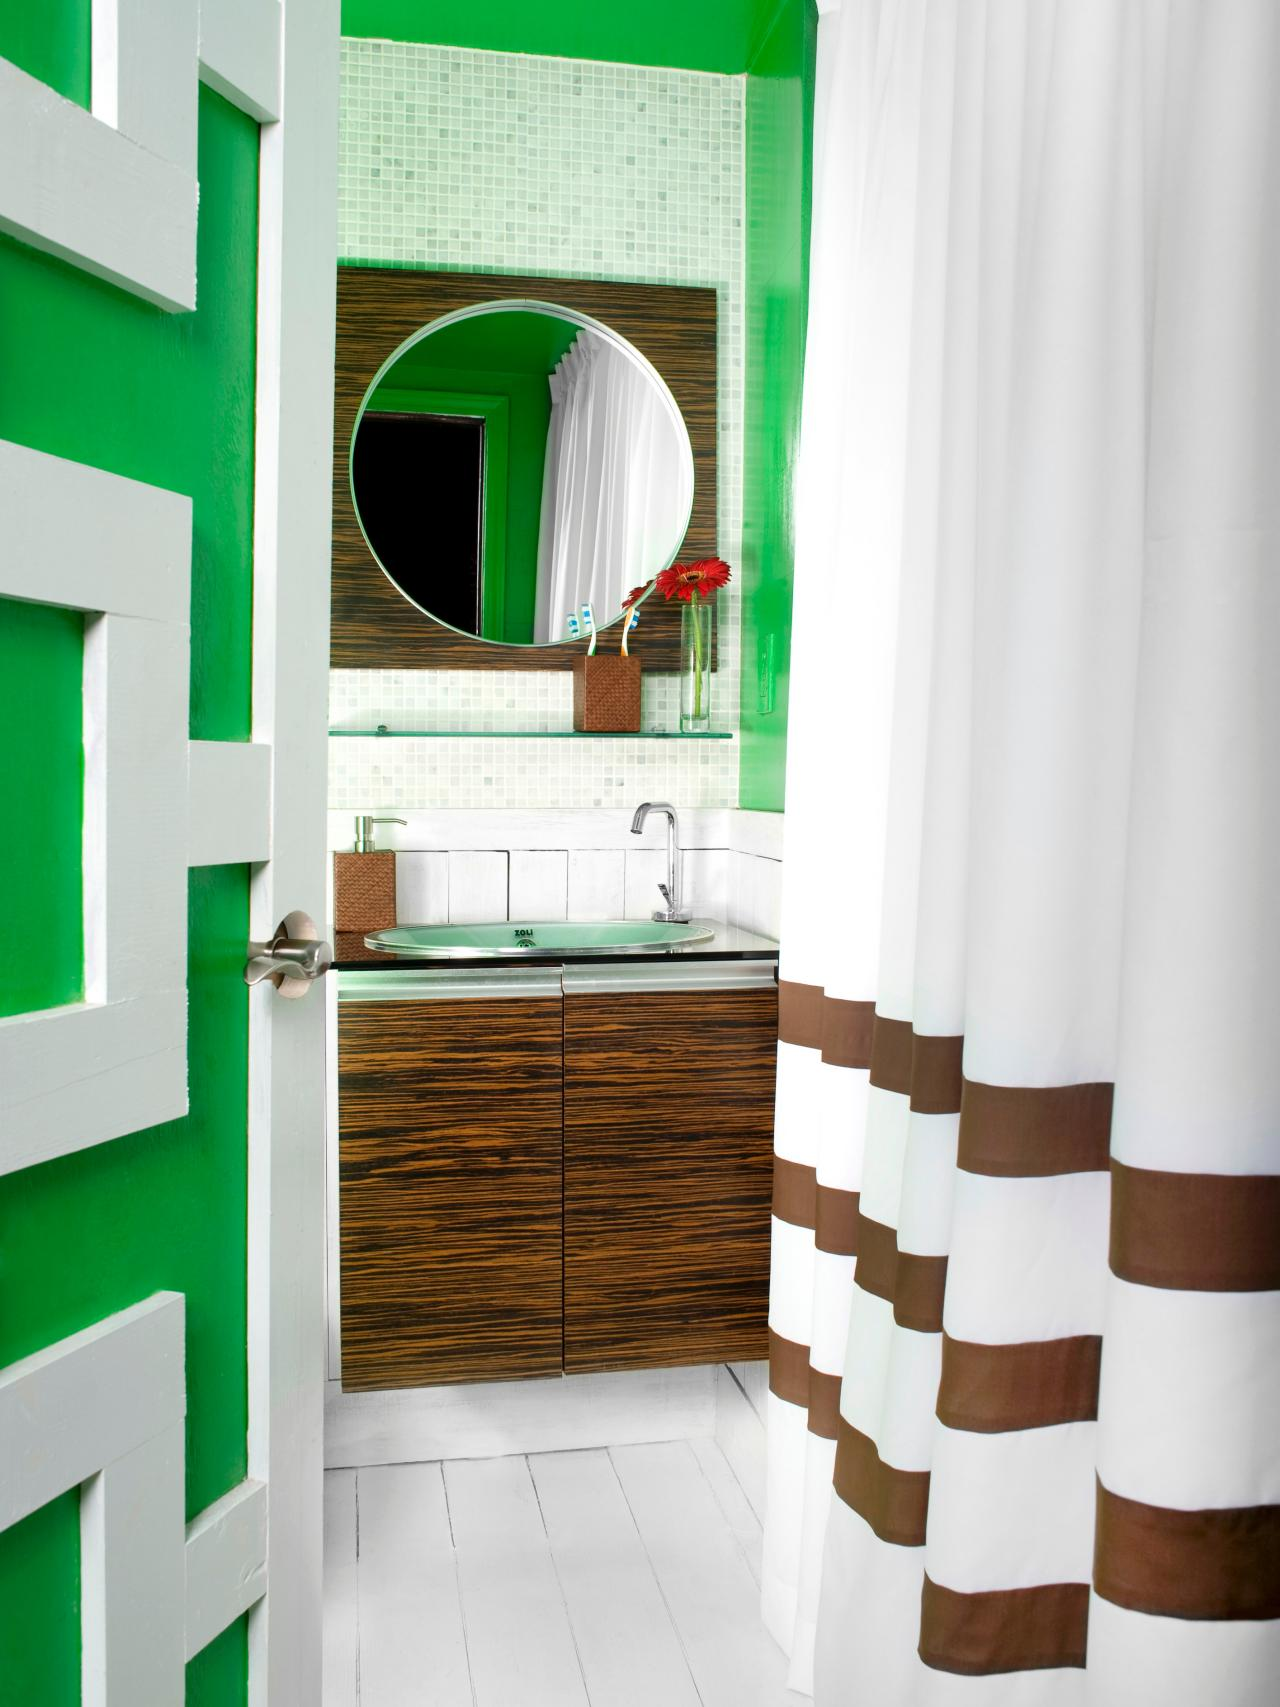 Bathroom color and paint ideas pictures tips from hgtv hgtv - Bathroom design colors ...